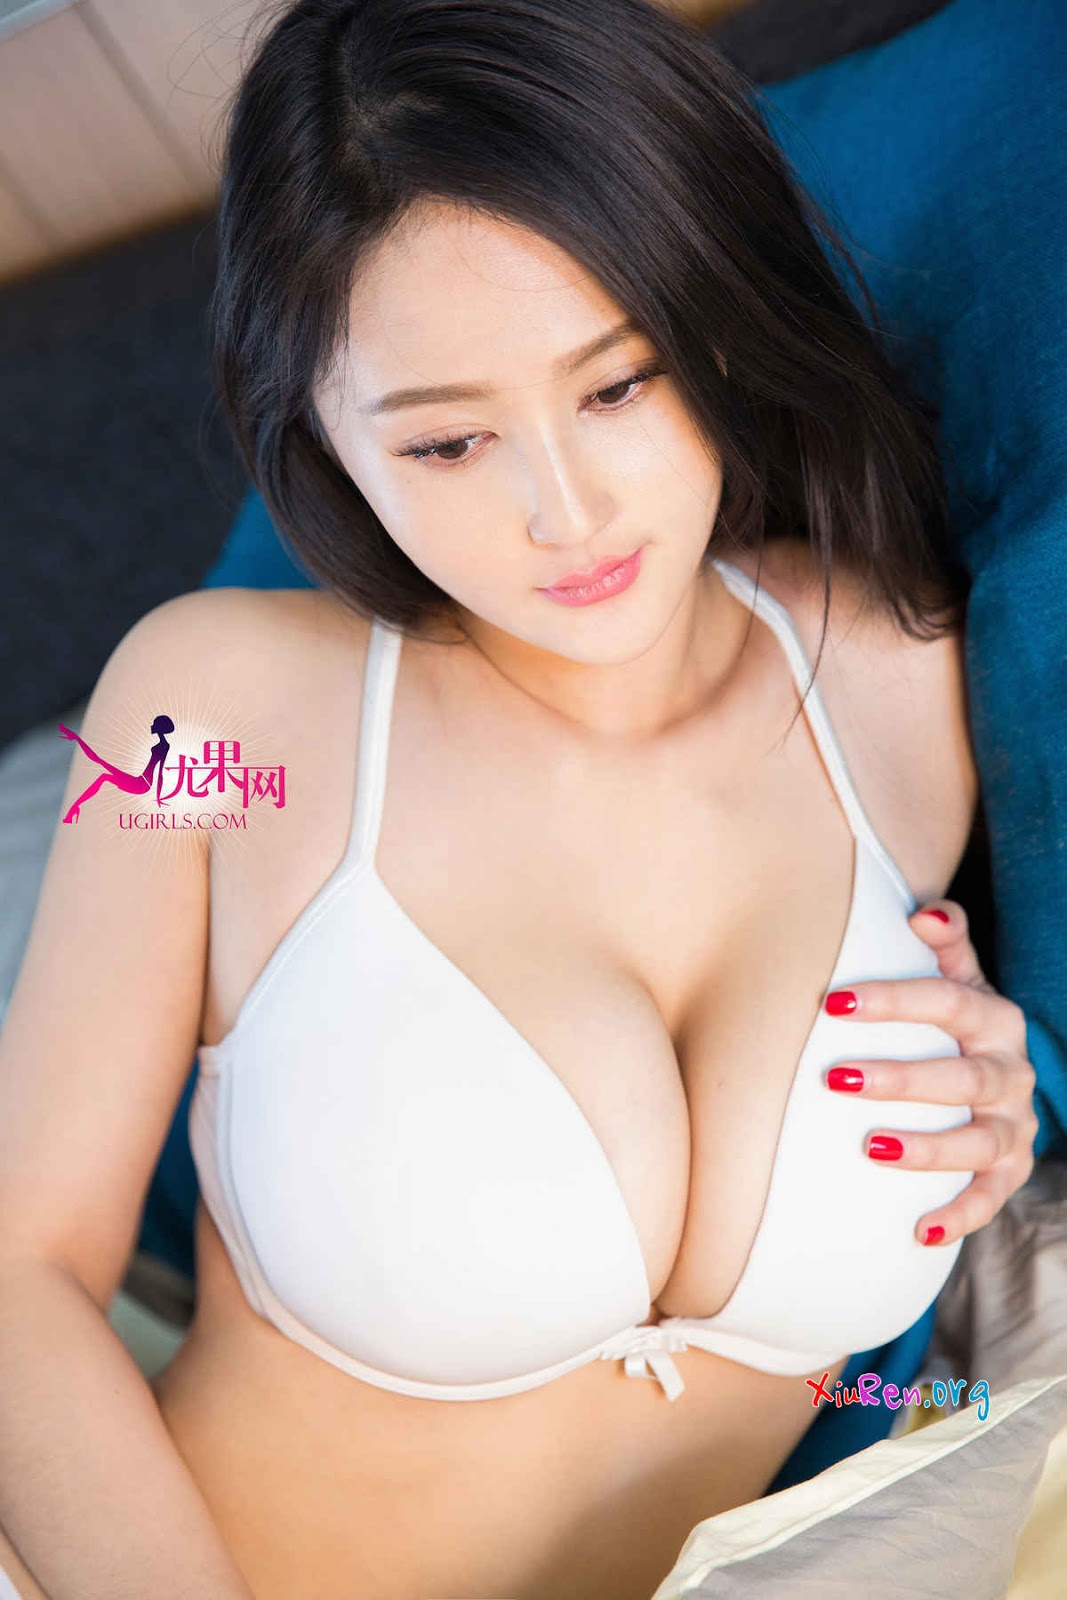 Chinese Girl Huge Boobs